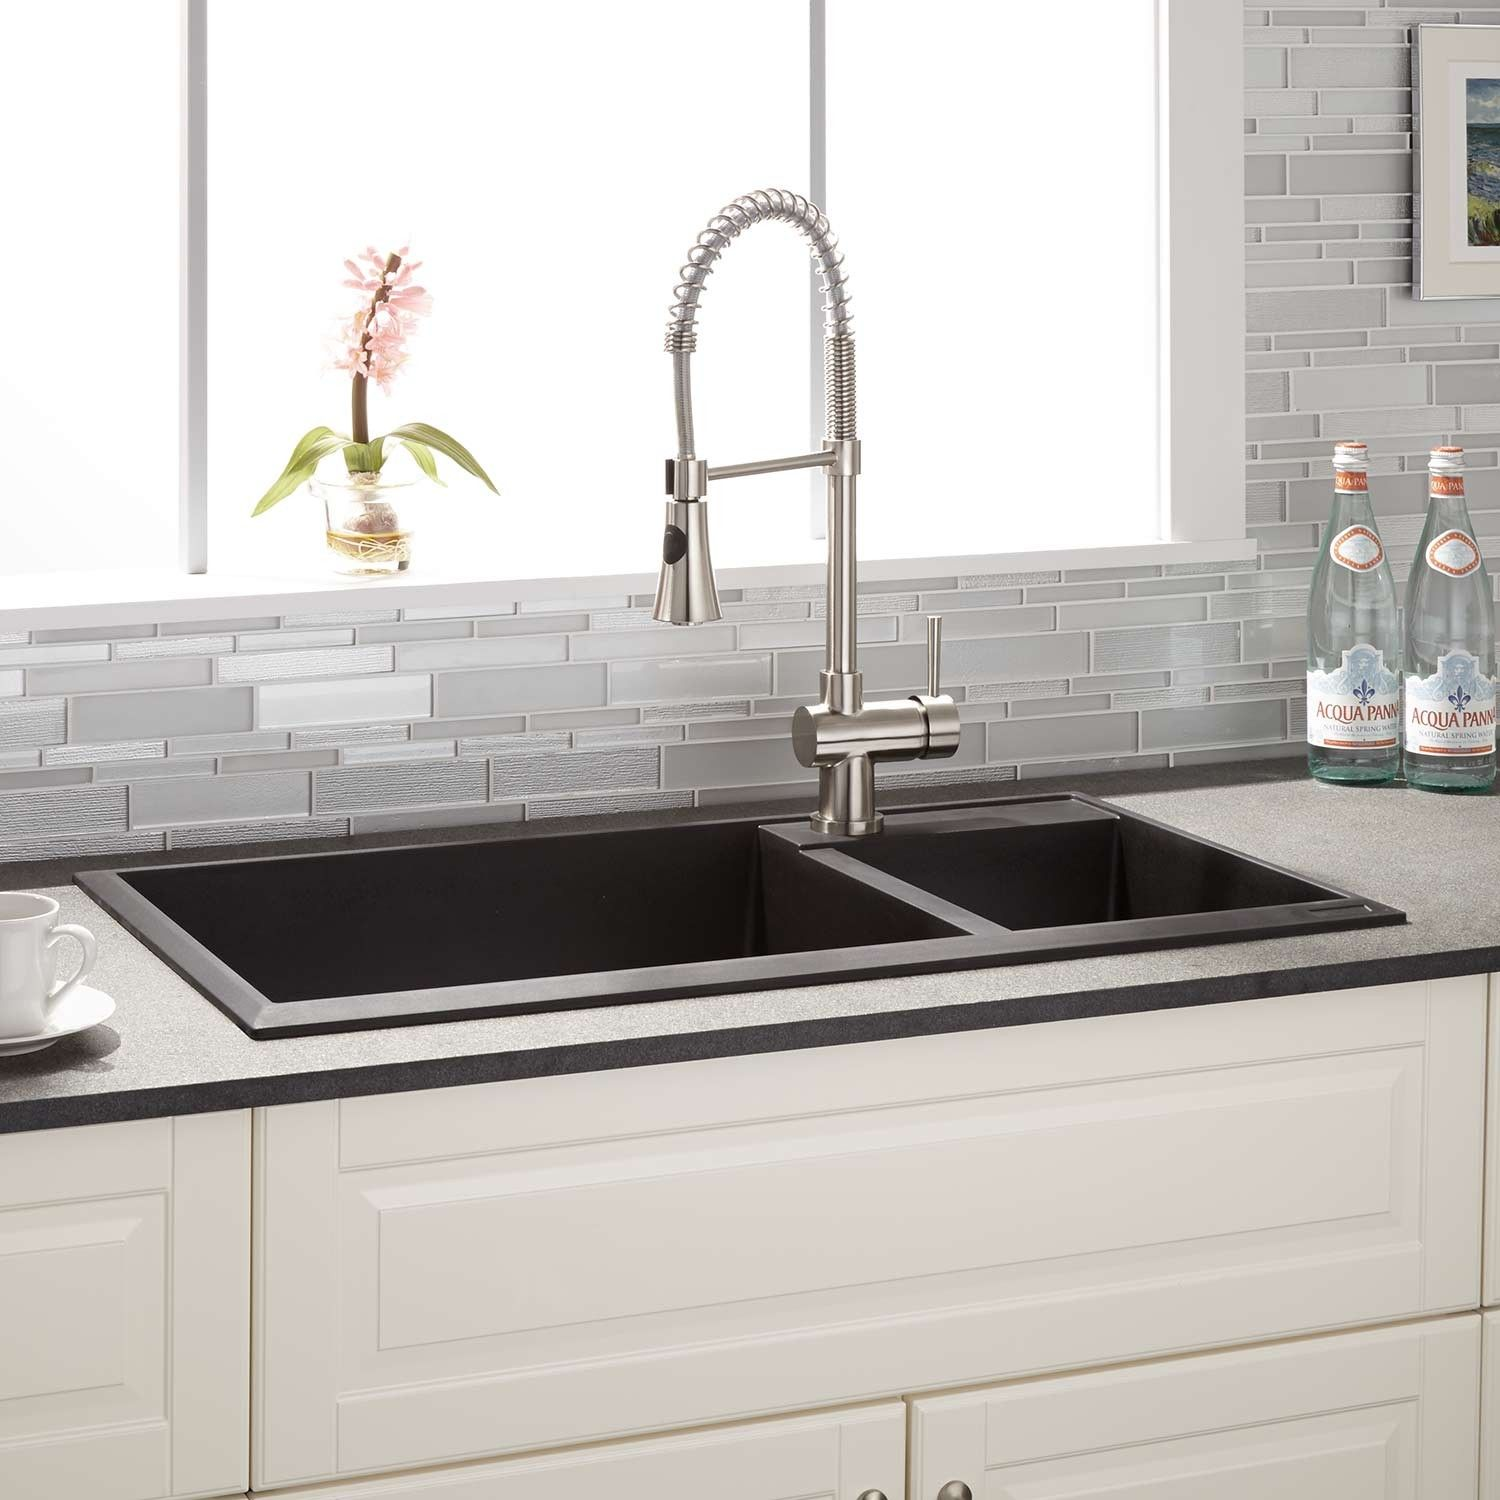 34 Arvel 70 30 Offset Double Bowl Drop In Granite Composite Sink